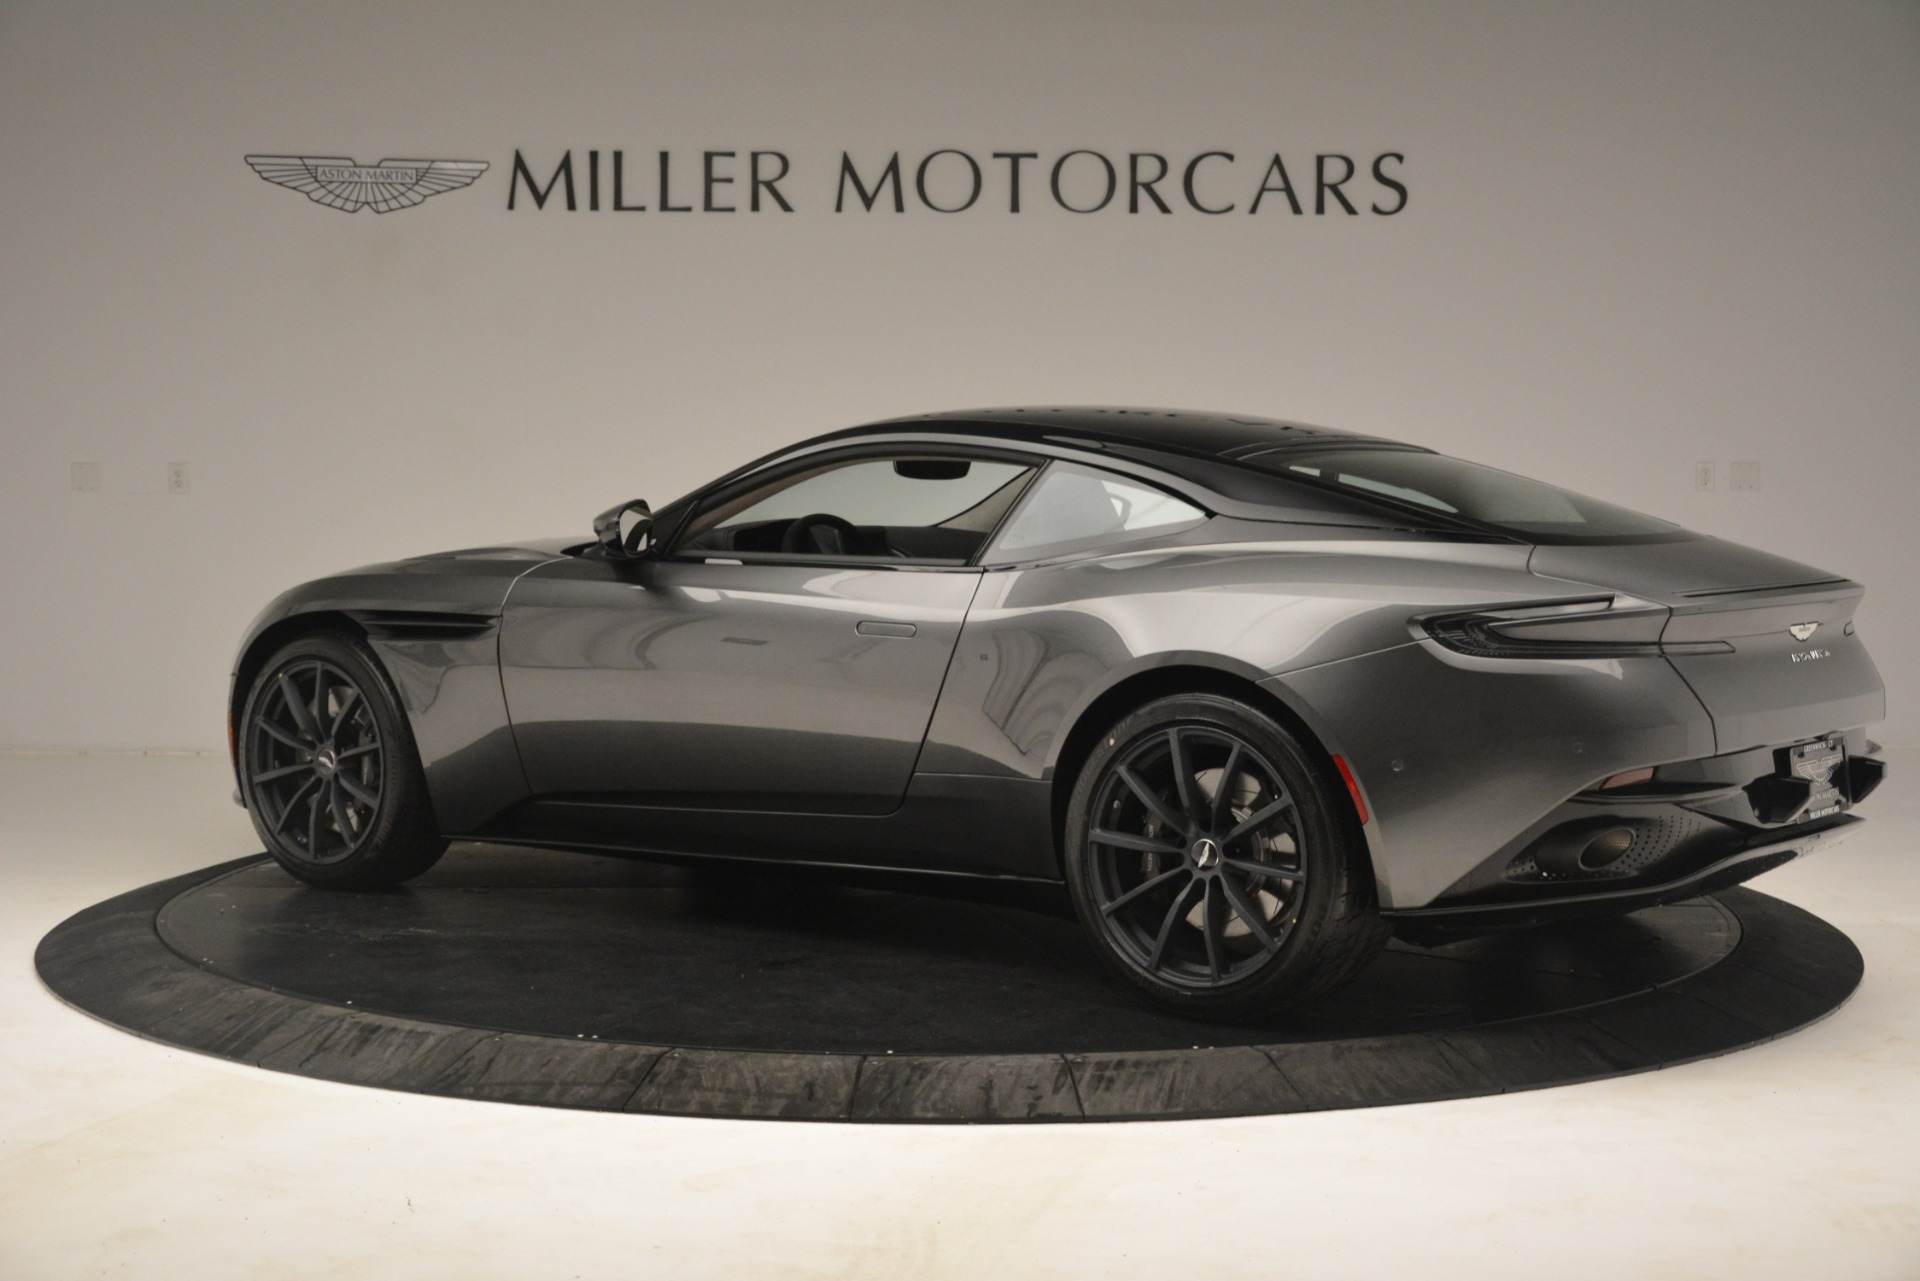 New 2019 Aston Martin DB11 V12 AMR Coupe For Sale In Greenwich, CT 3123_p4